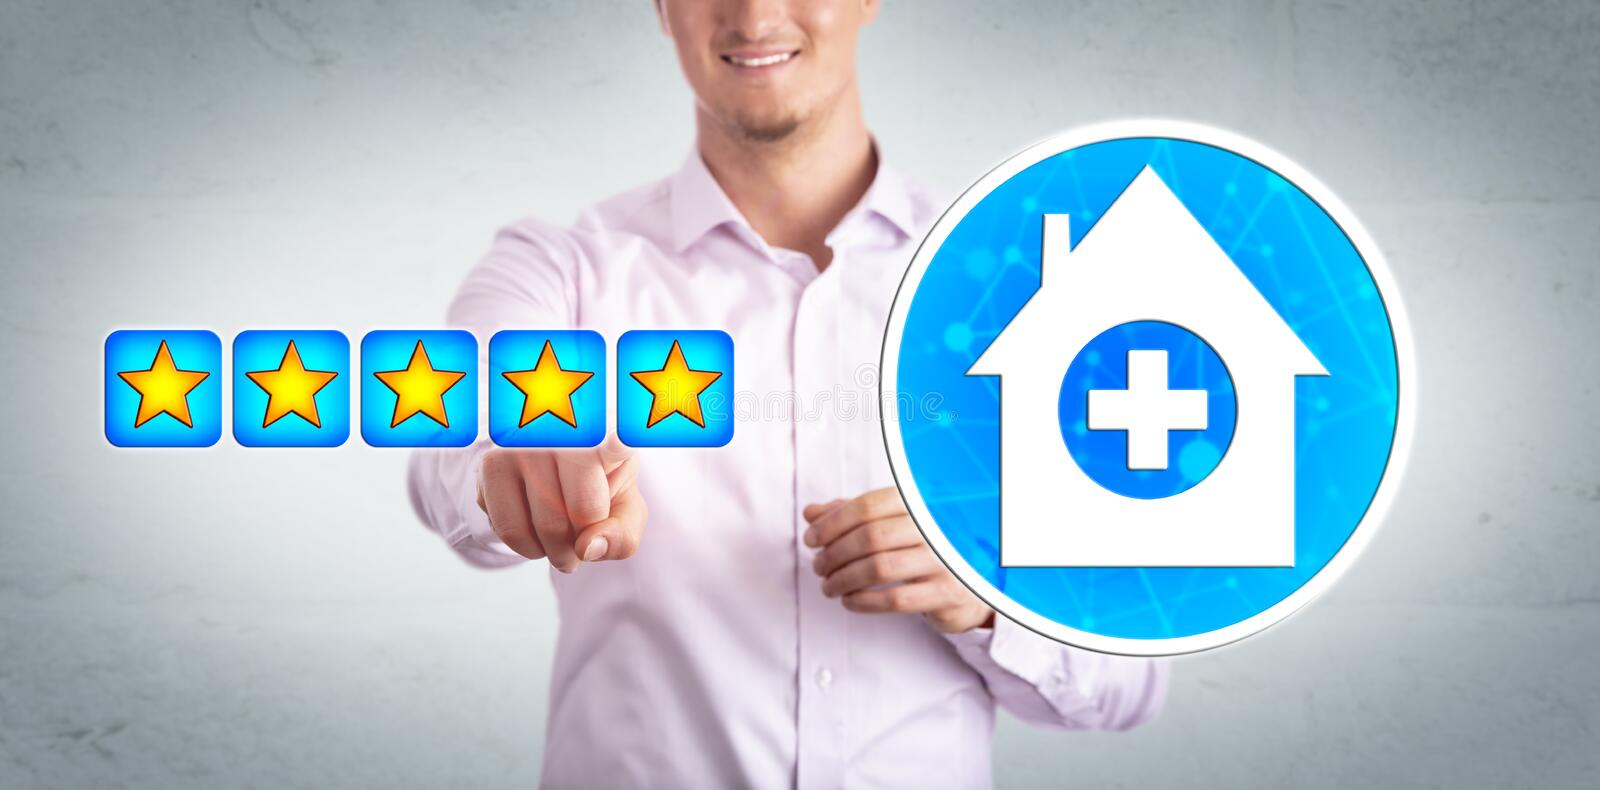 Smiling Healthcare Consumer Giving Star Rating royalty free stock photography